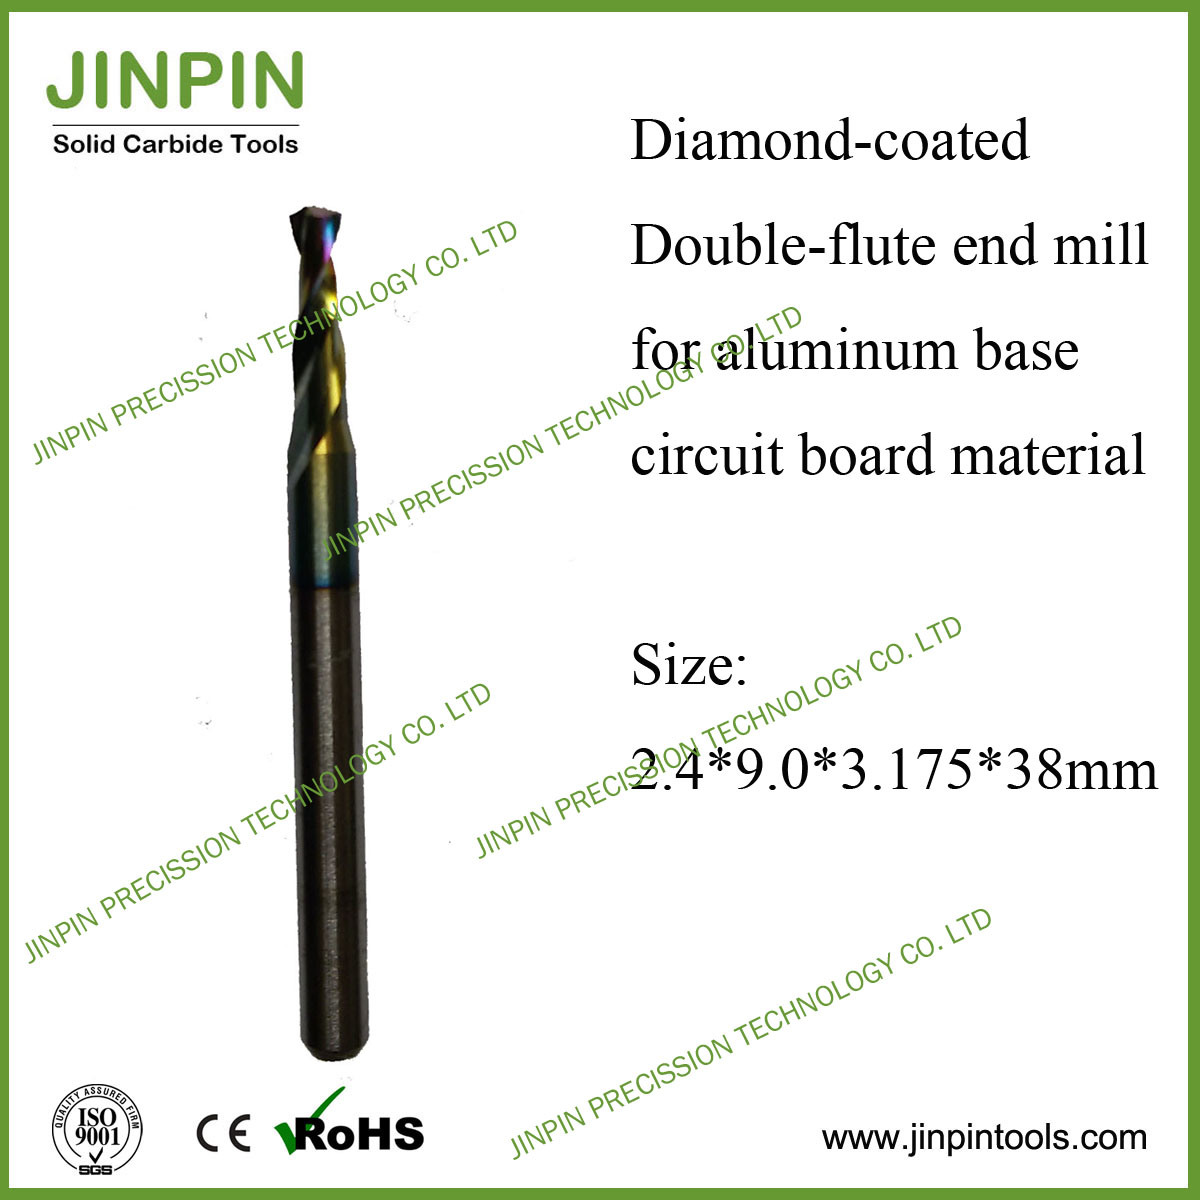 2-Flute Solid Carbide End Mill for Aluminum Backed Pcbmaterial